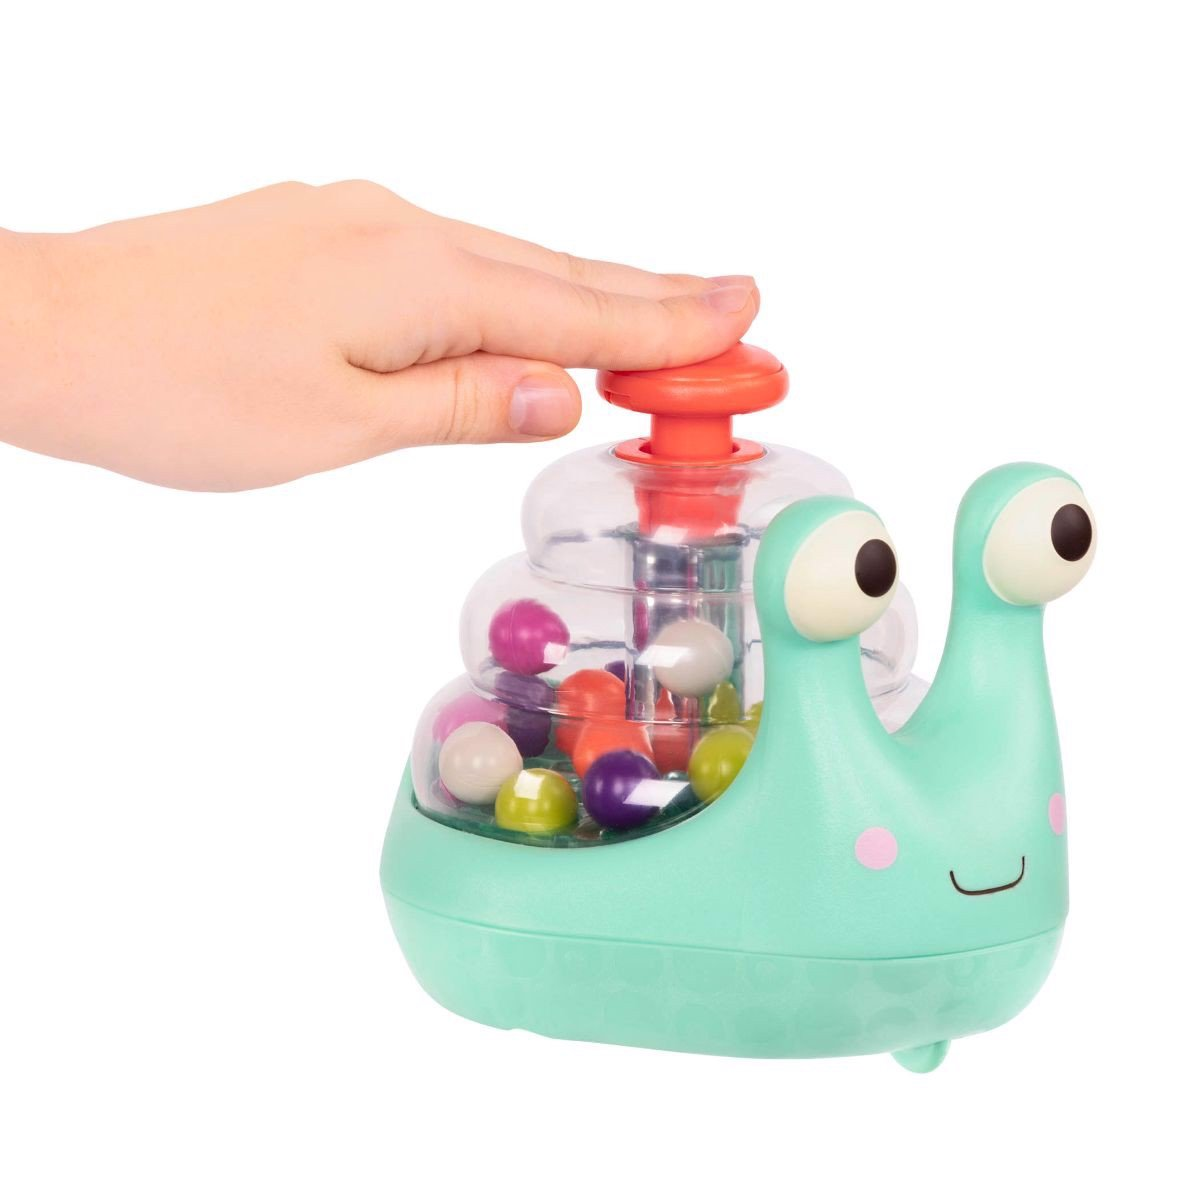 B. Rolling Light-Up Snail Popper